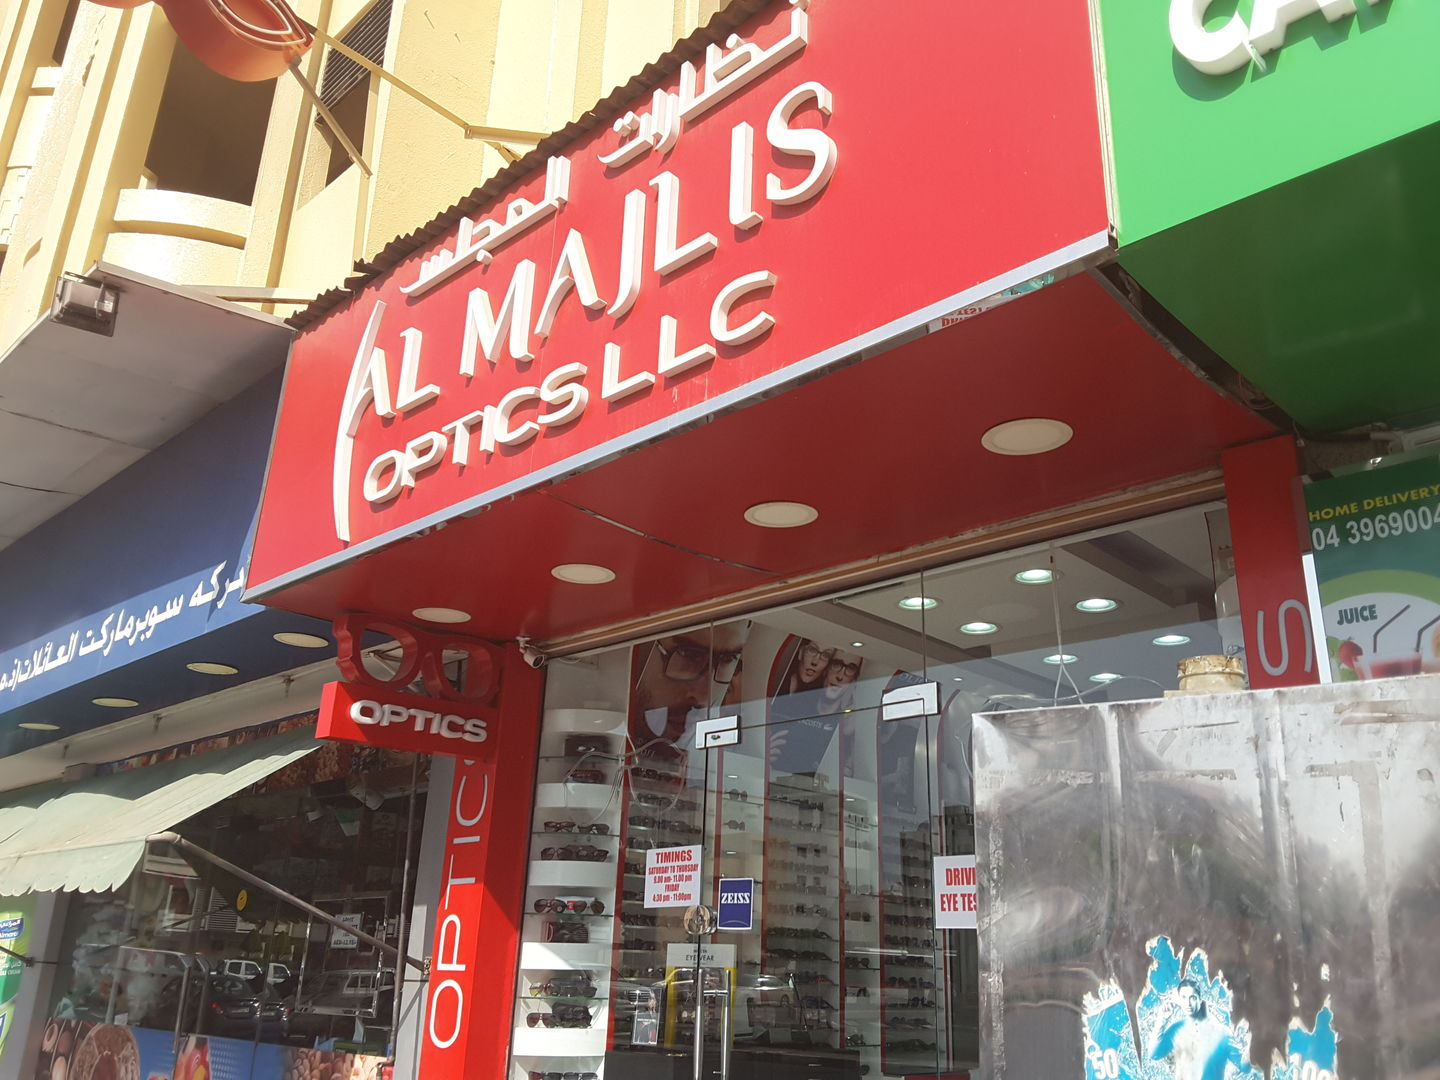 HiDubai-business-al-majlis-optics-shopping-watches-eyewear-al-karama-dubai-2